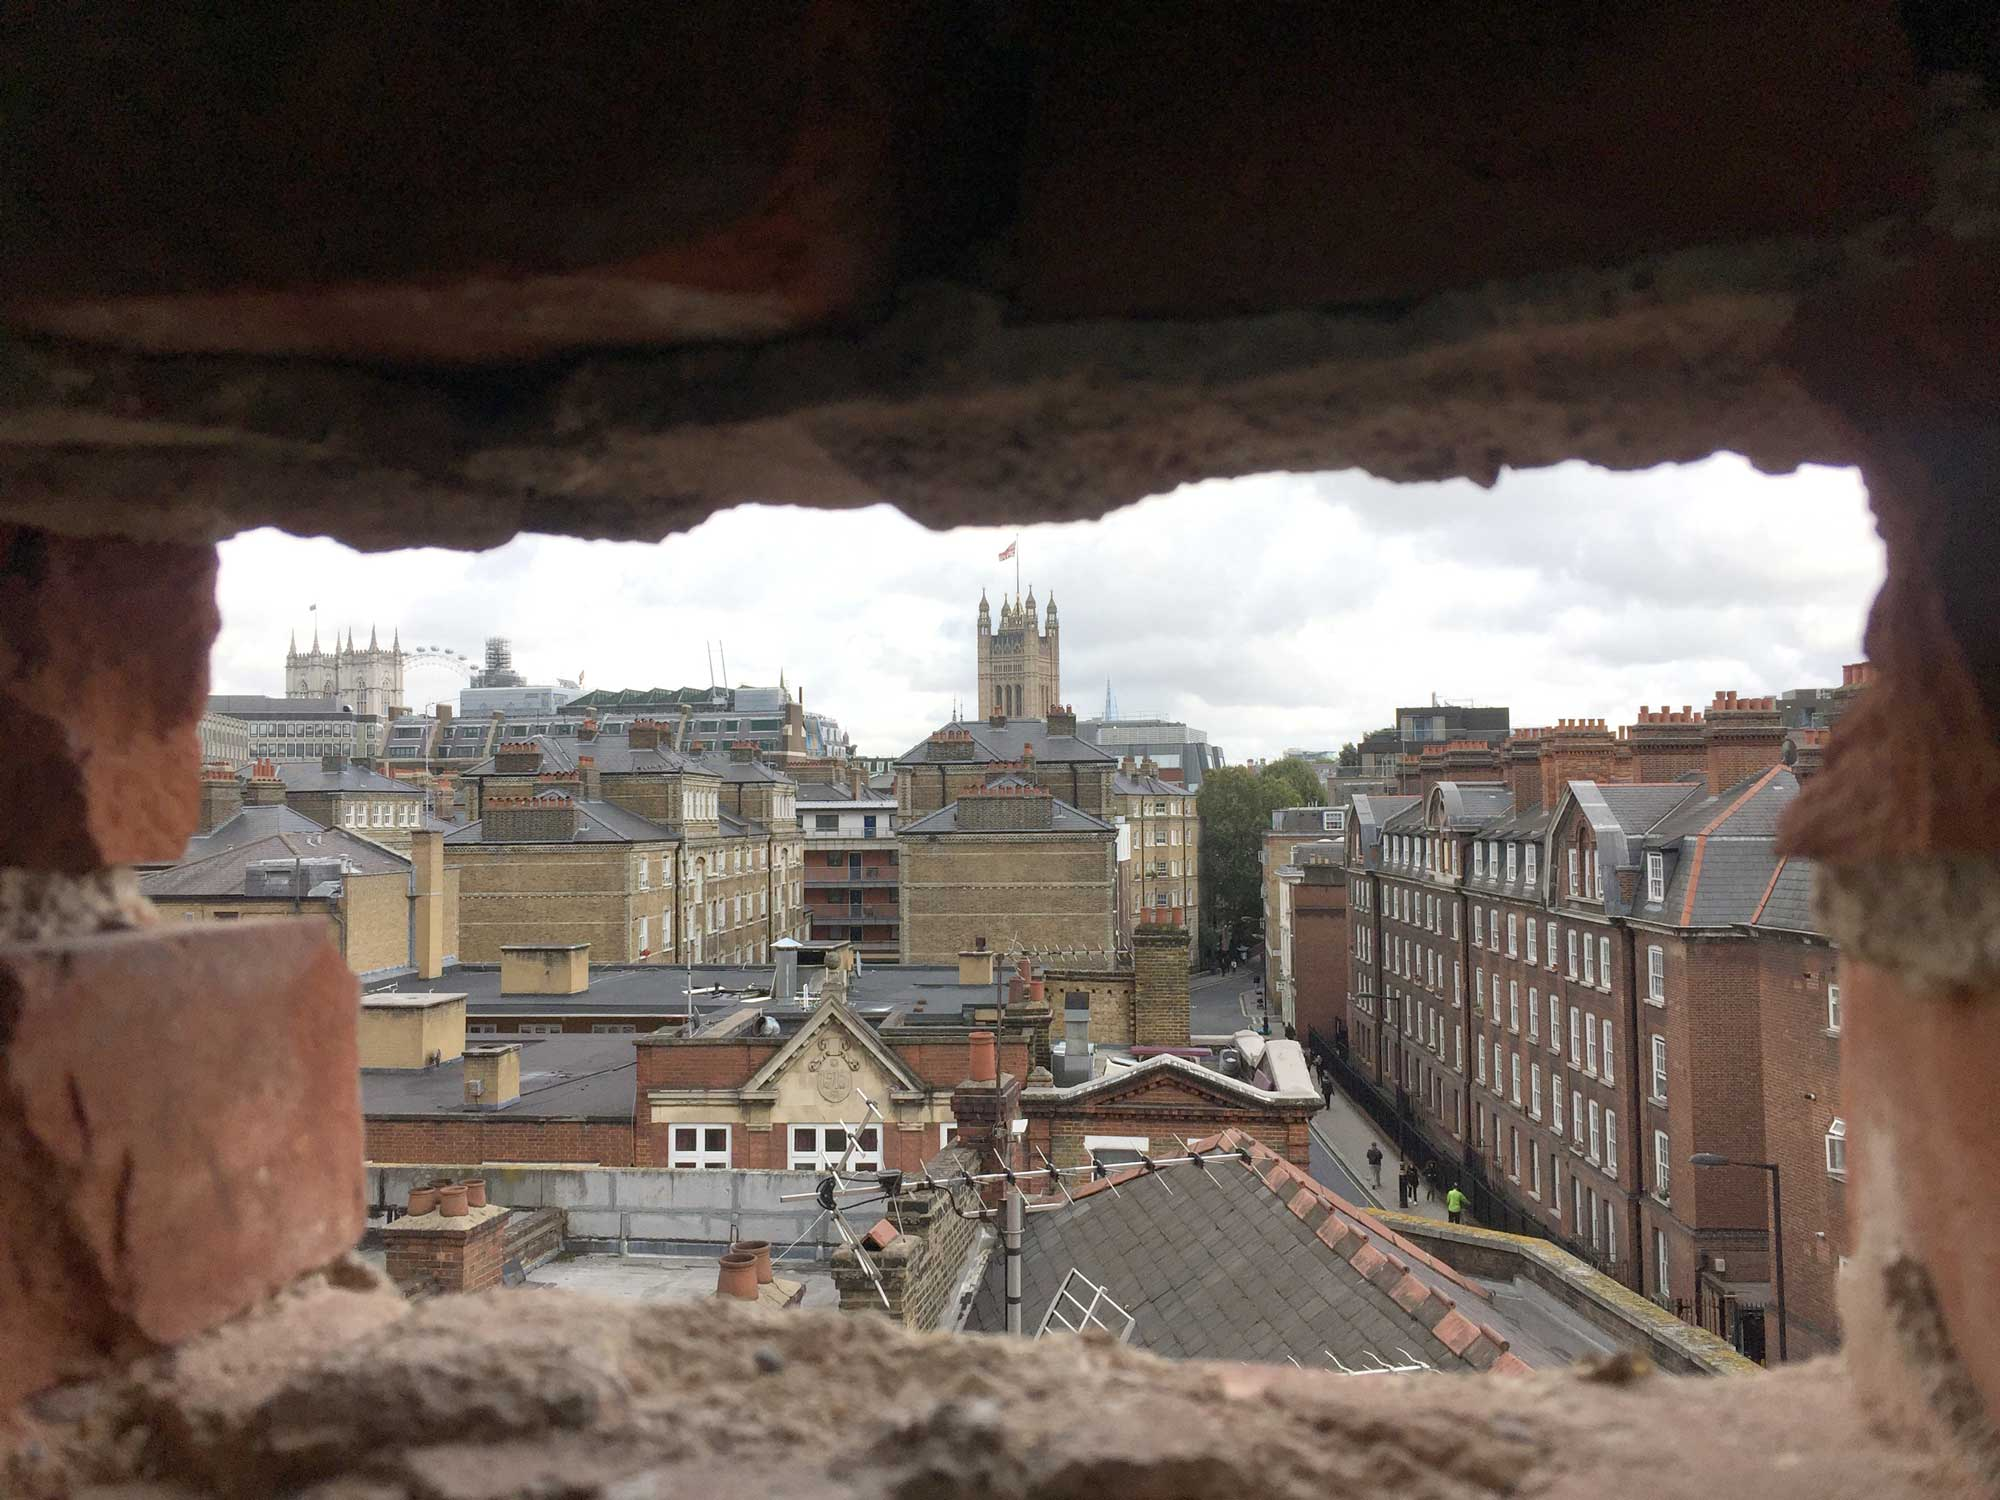 westminster-fire-station-openstudio-architects-view-from-hole